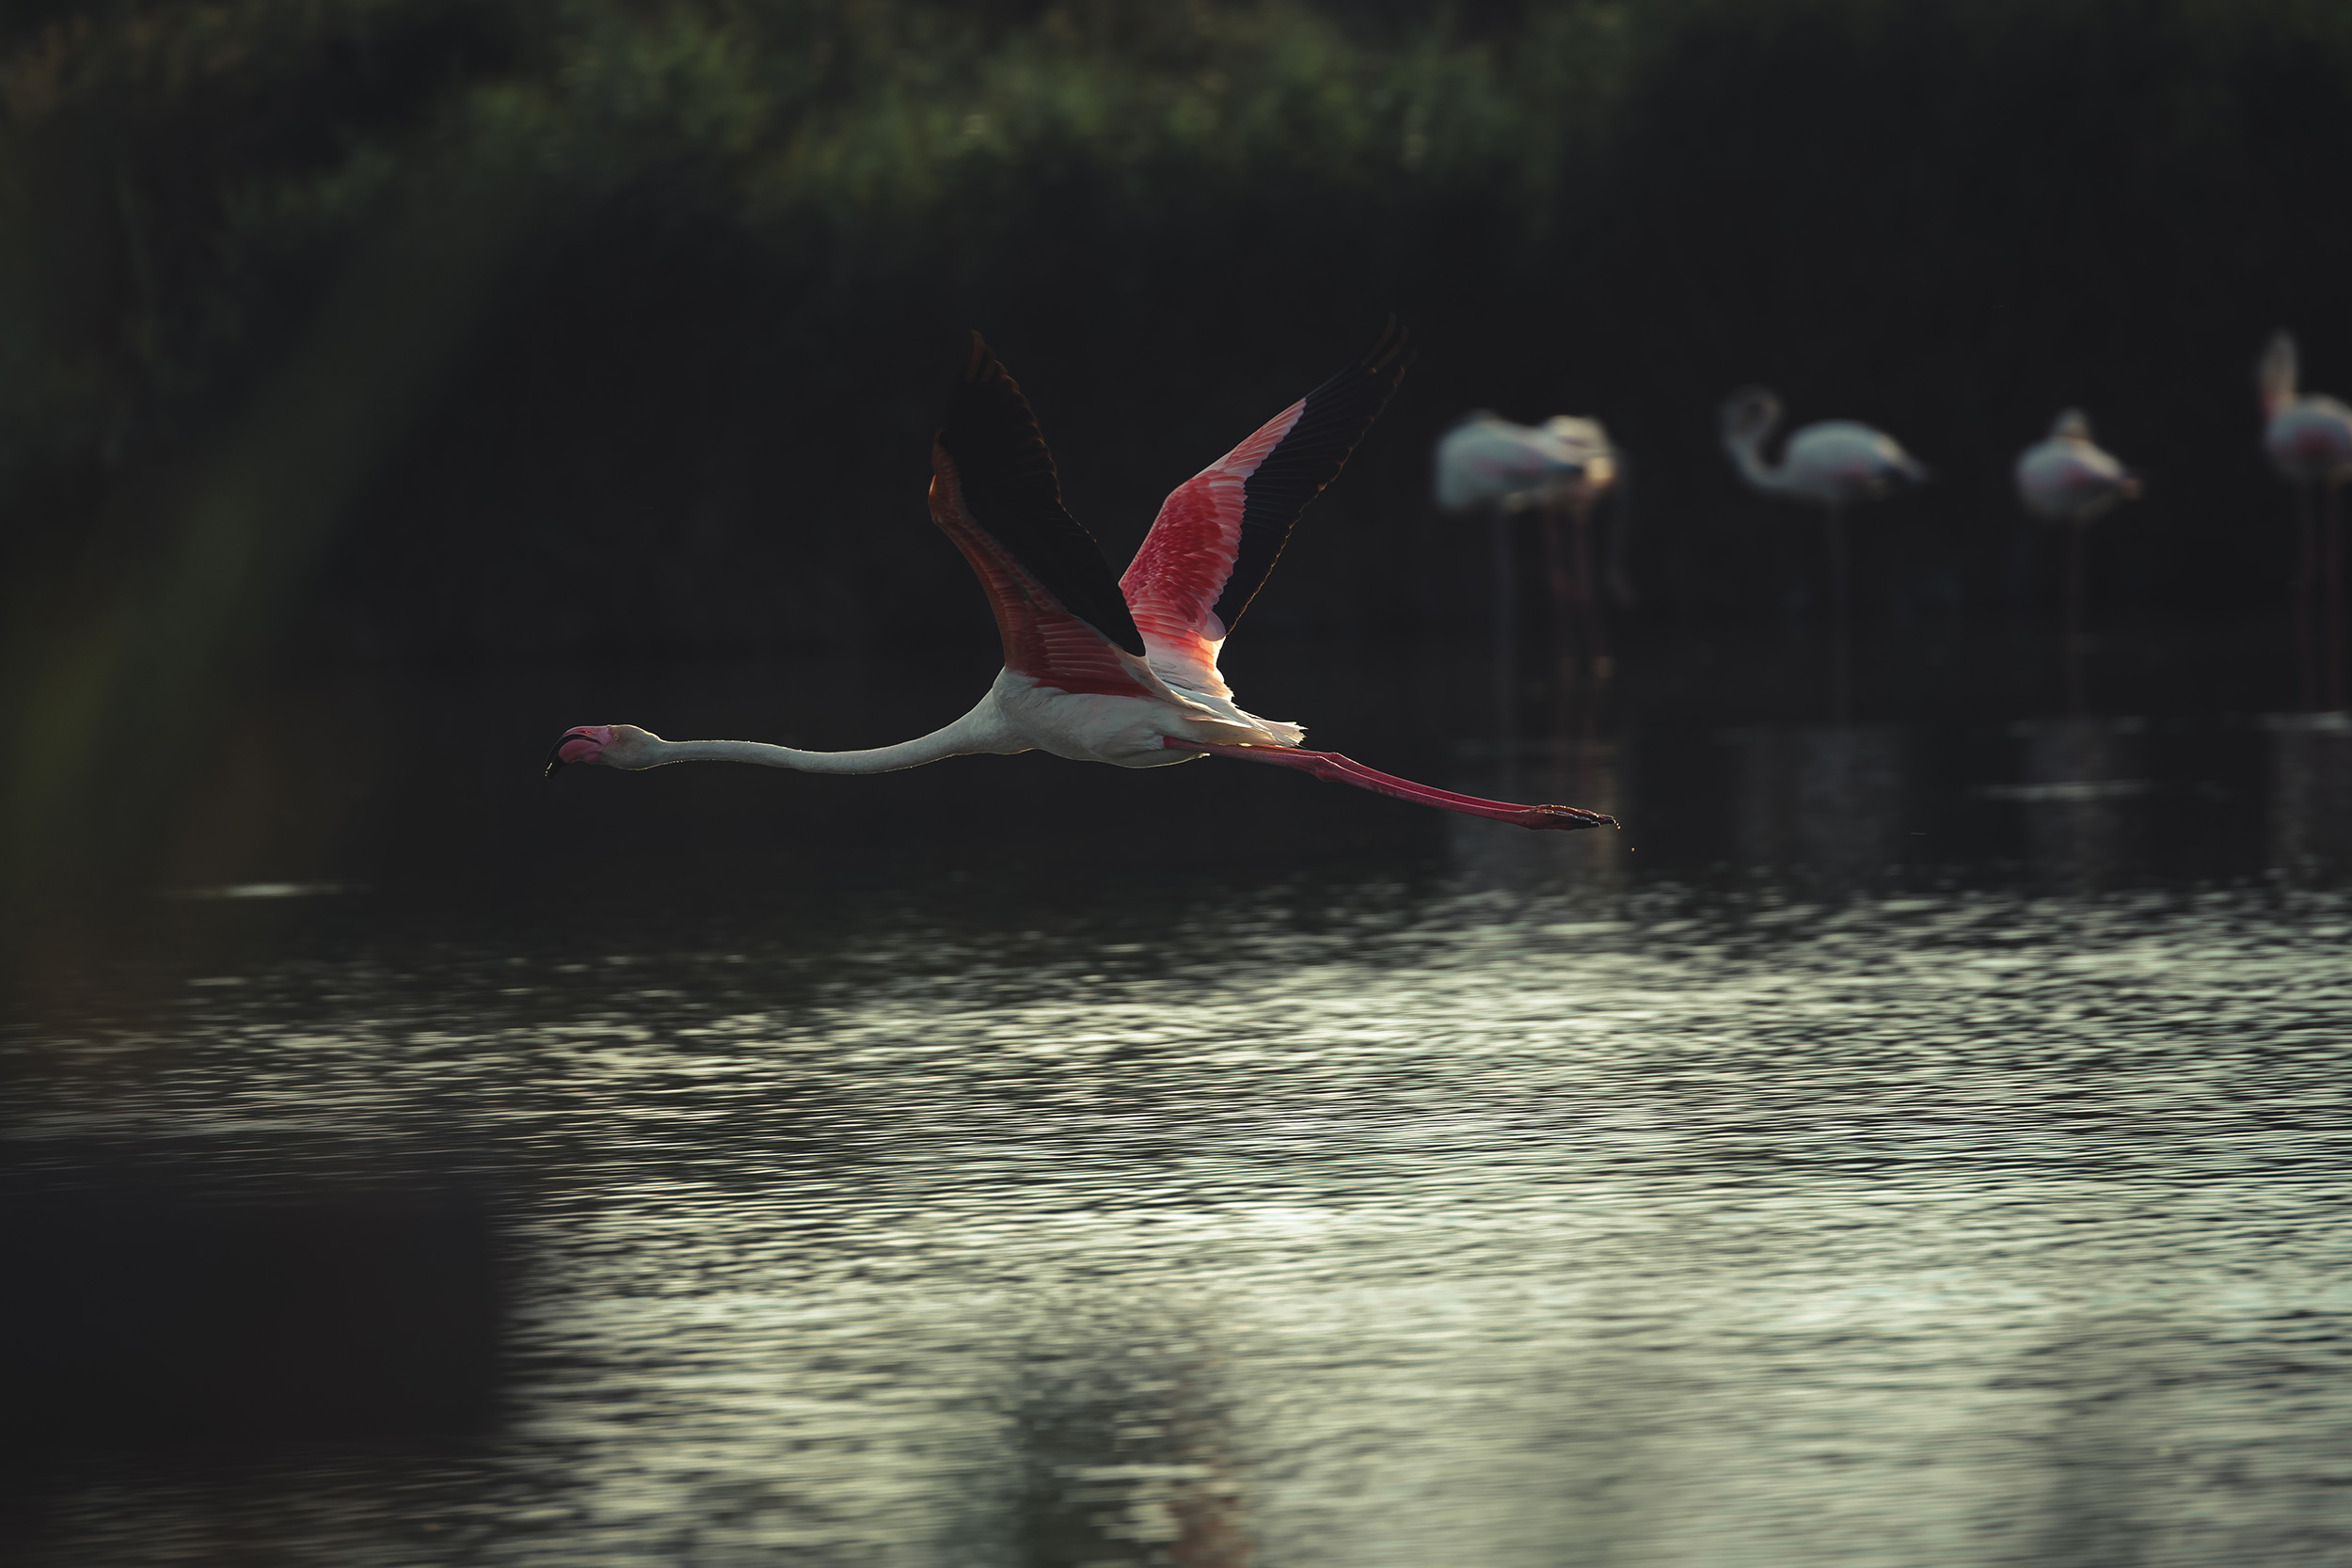 Flamant rose qui vole